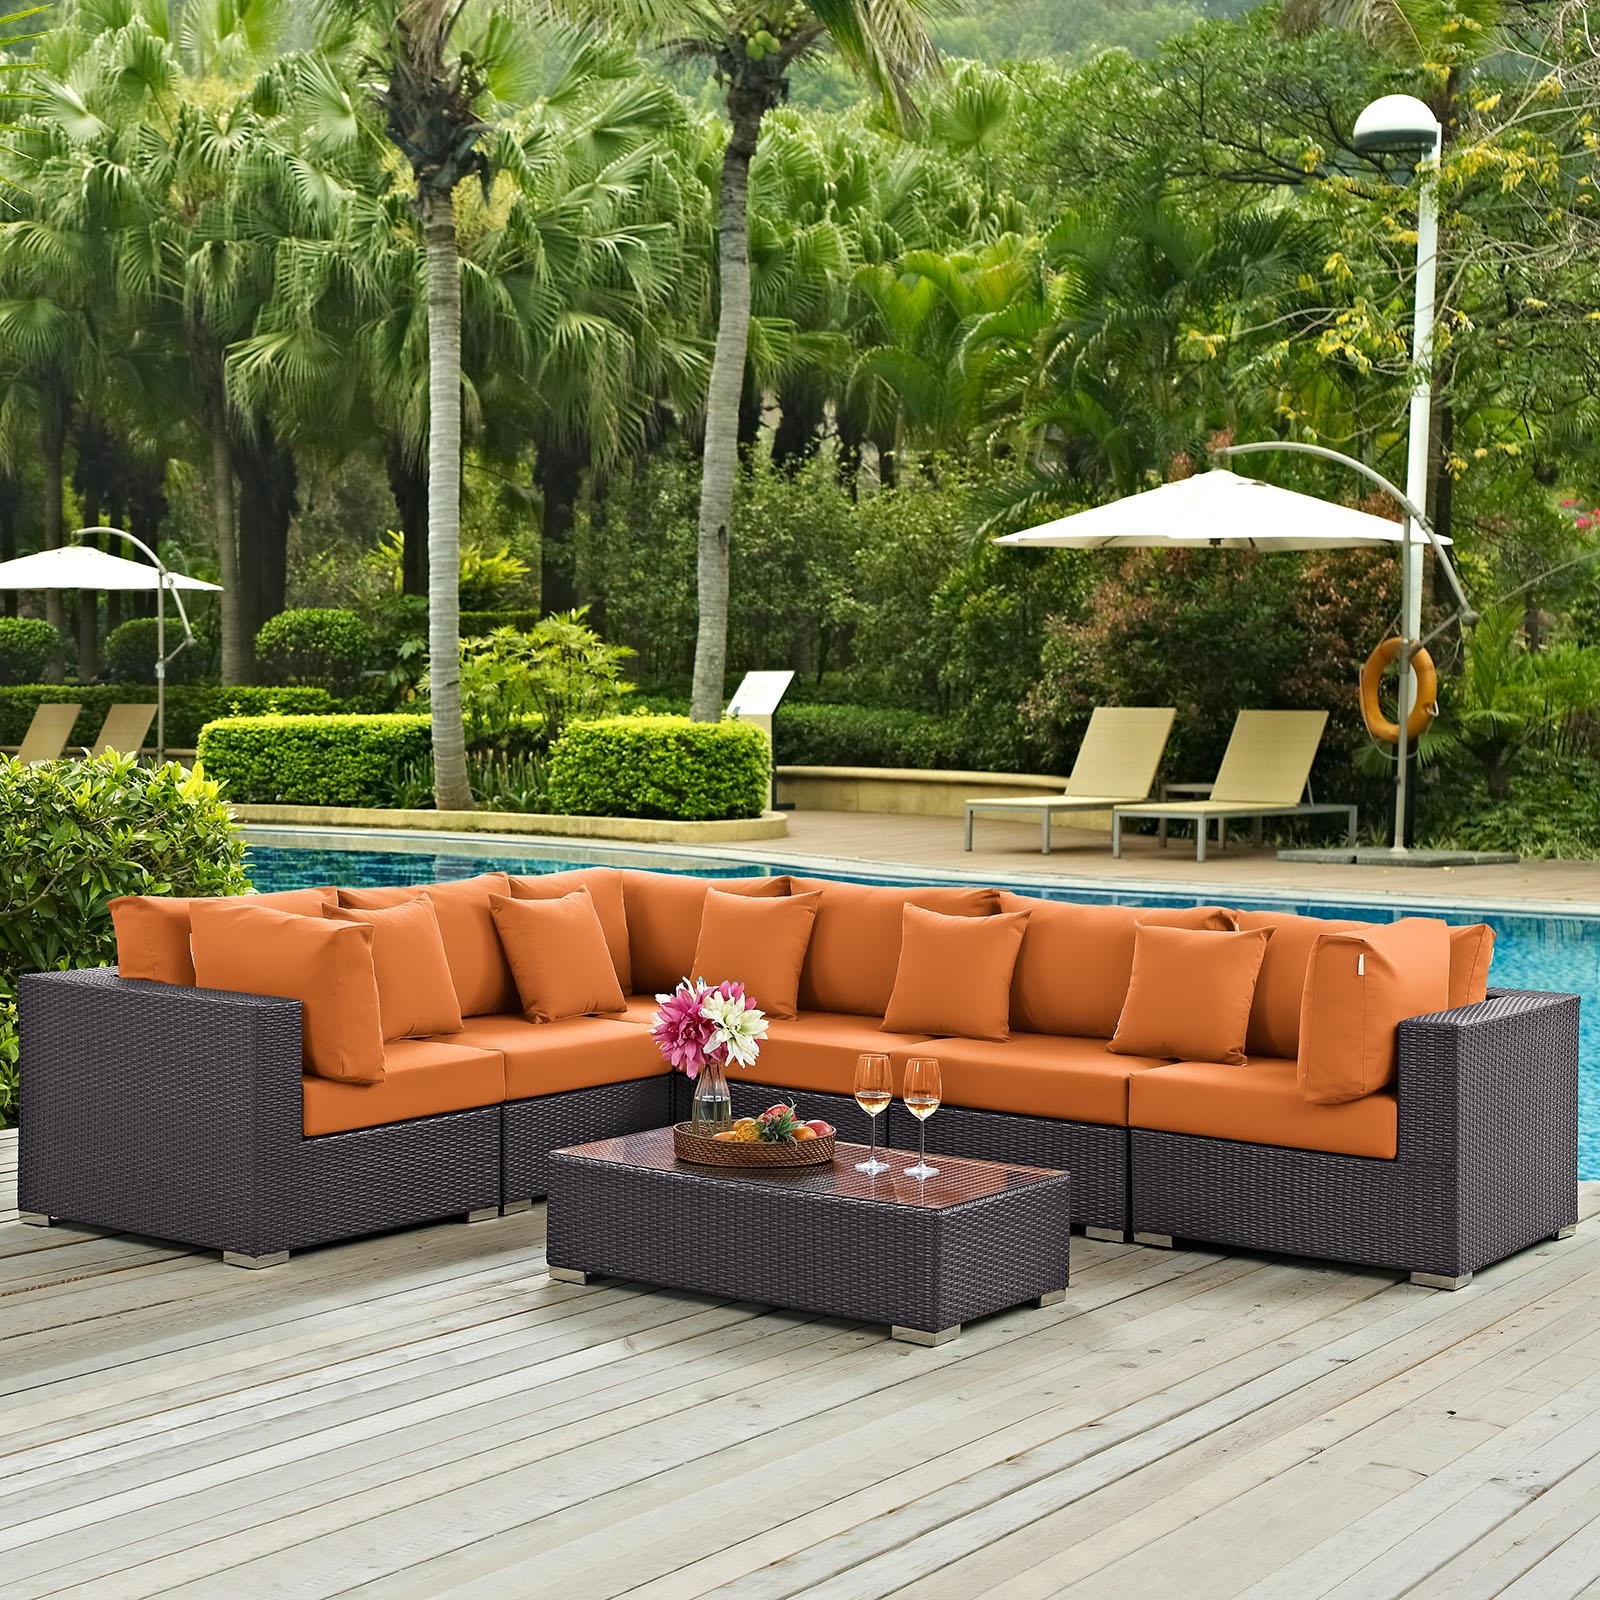 Convene 7 Piece Outdoor Patio Sectional Set in Expresso Orange